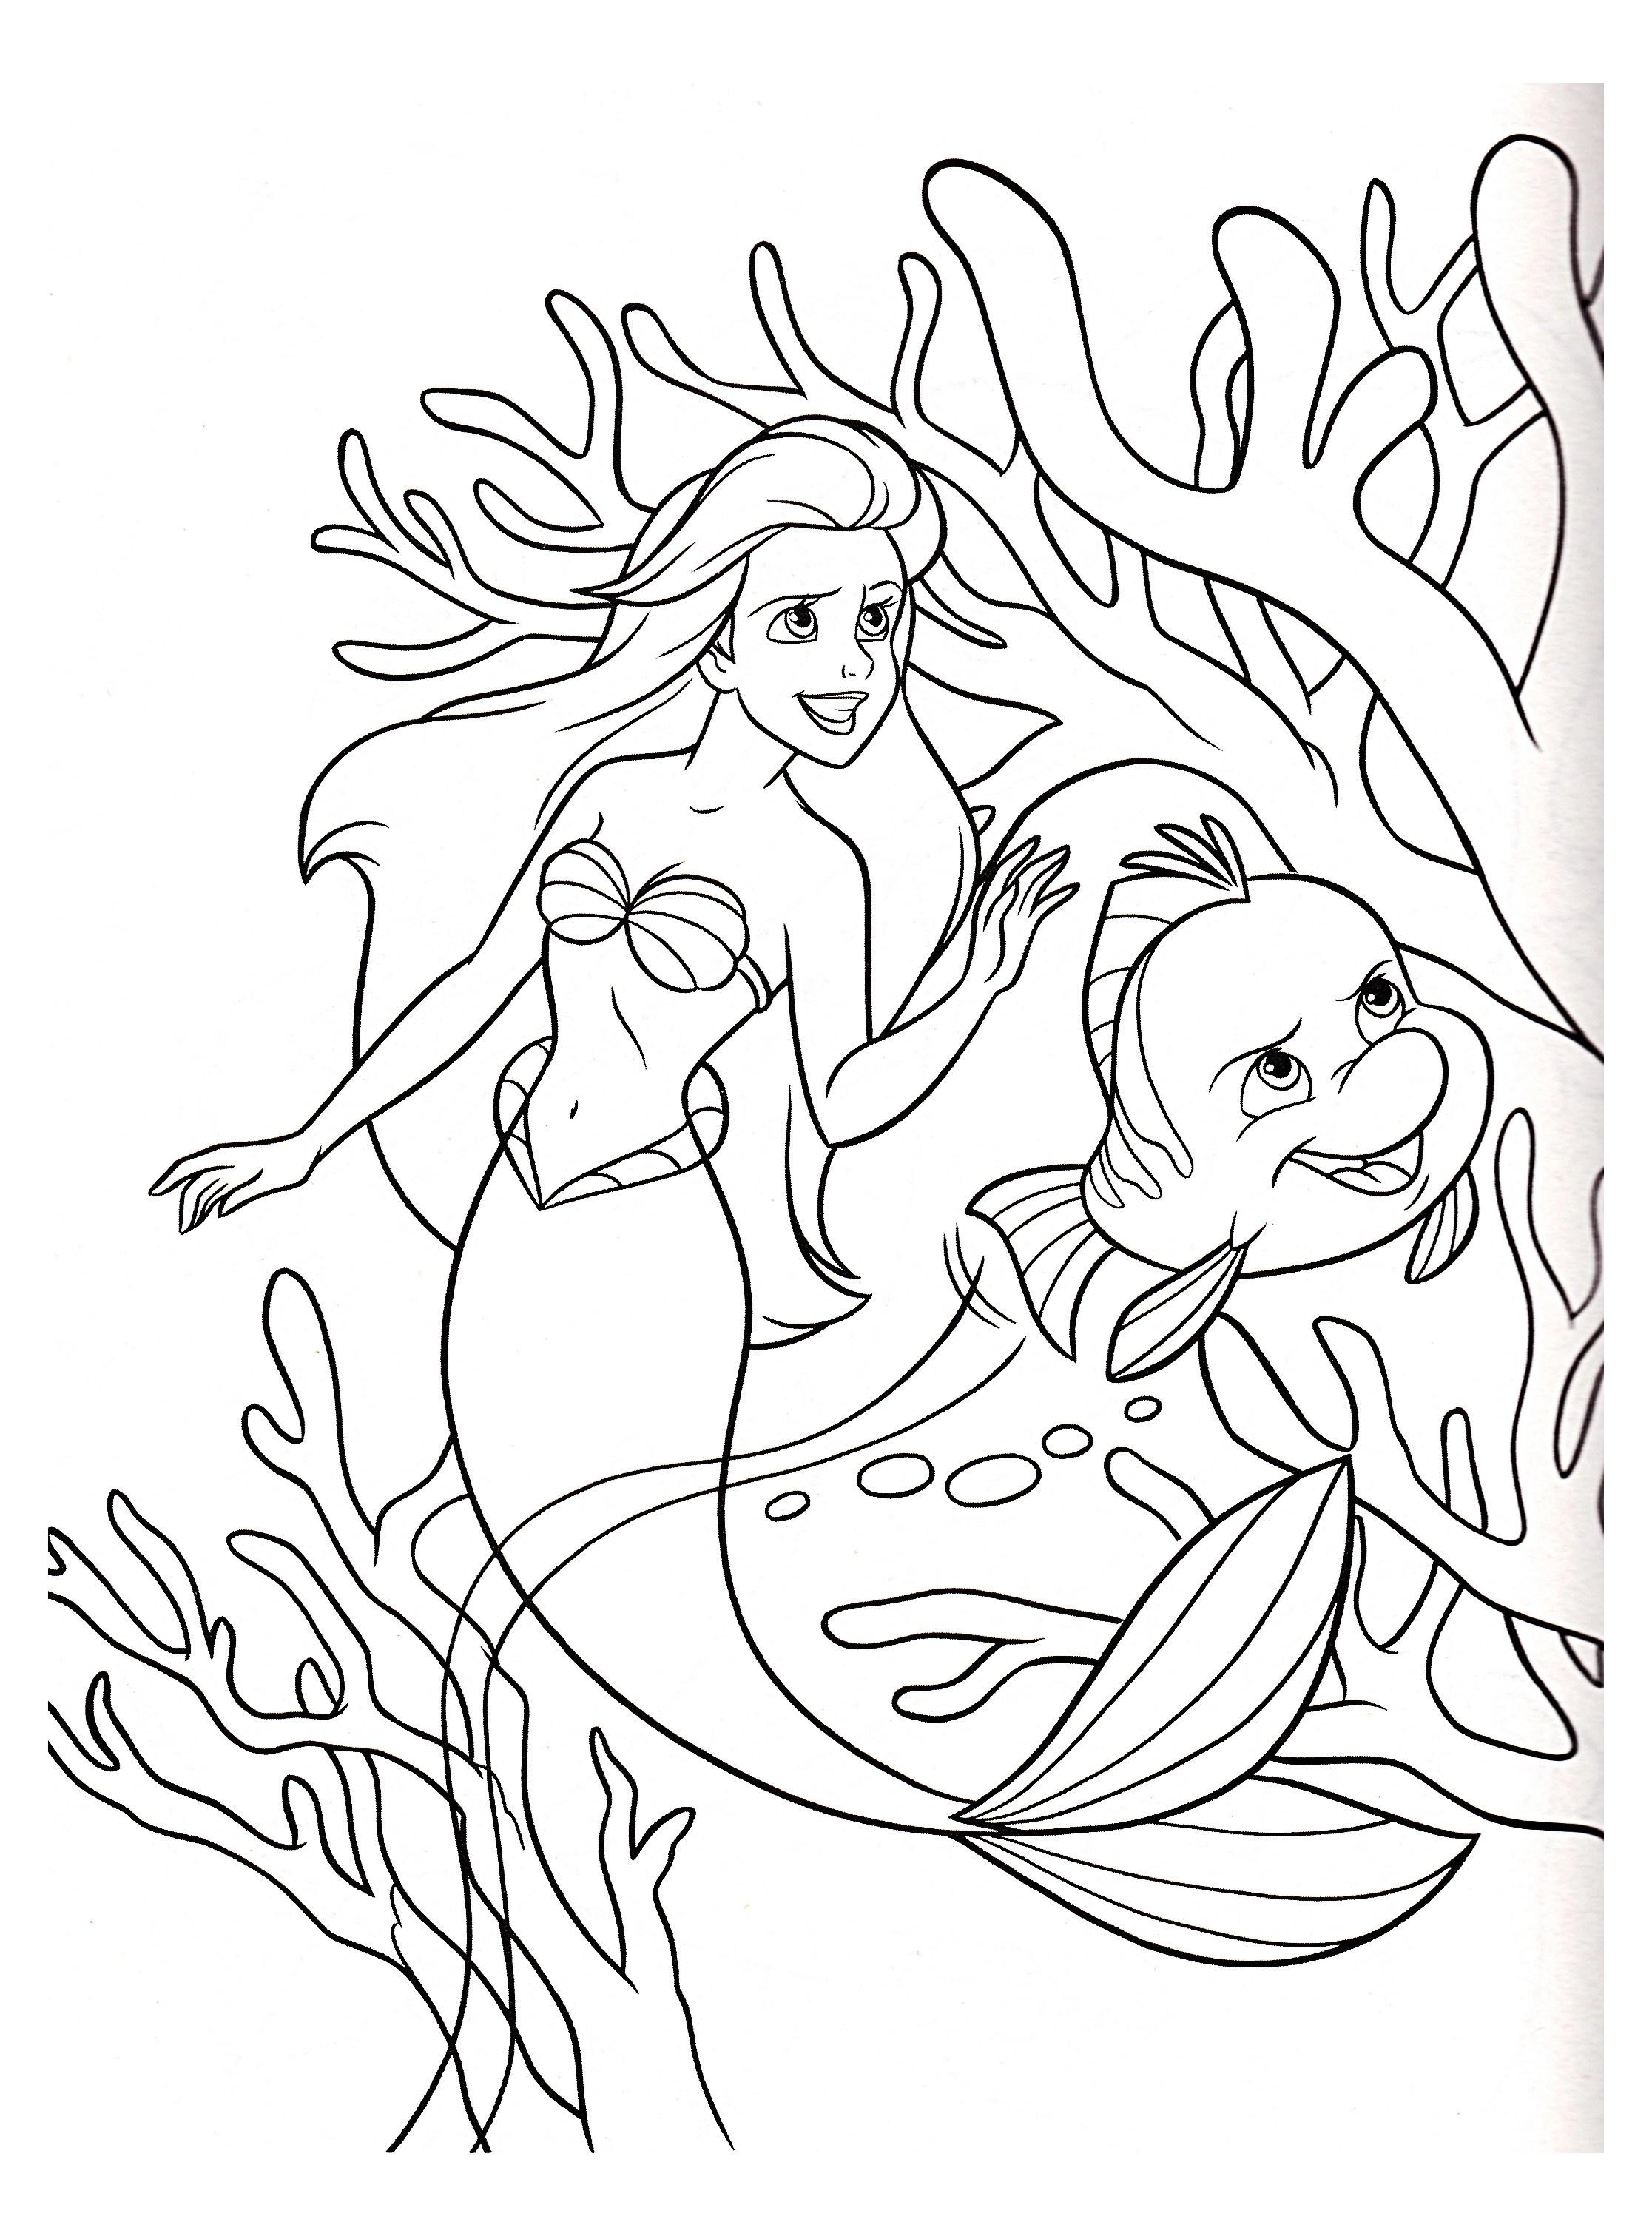 The Little Mermaid To Color For Children